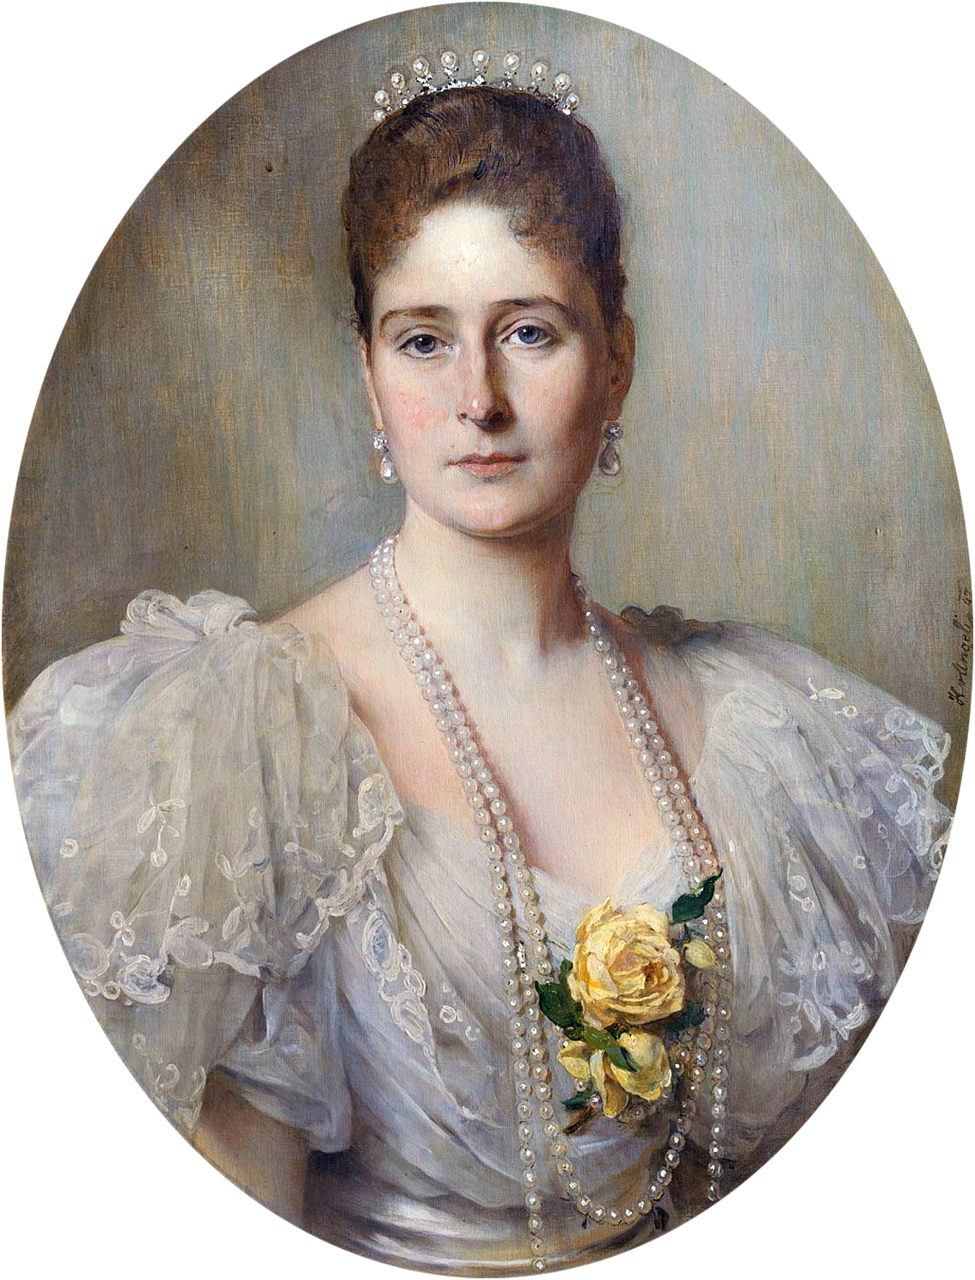 Empress Alexandra Feodorovna of Russia, née Princess Alix of Hesse and by Rhine. The portrait was painted for Queen Victoria of the United Kingdom. Owned by The Royal Collection.